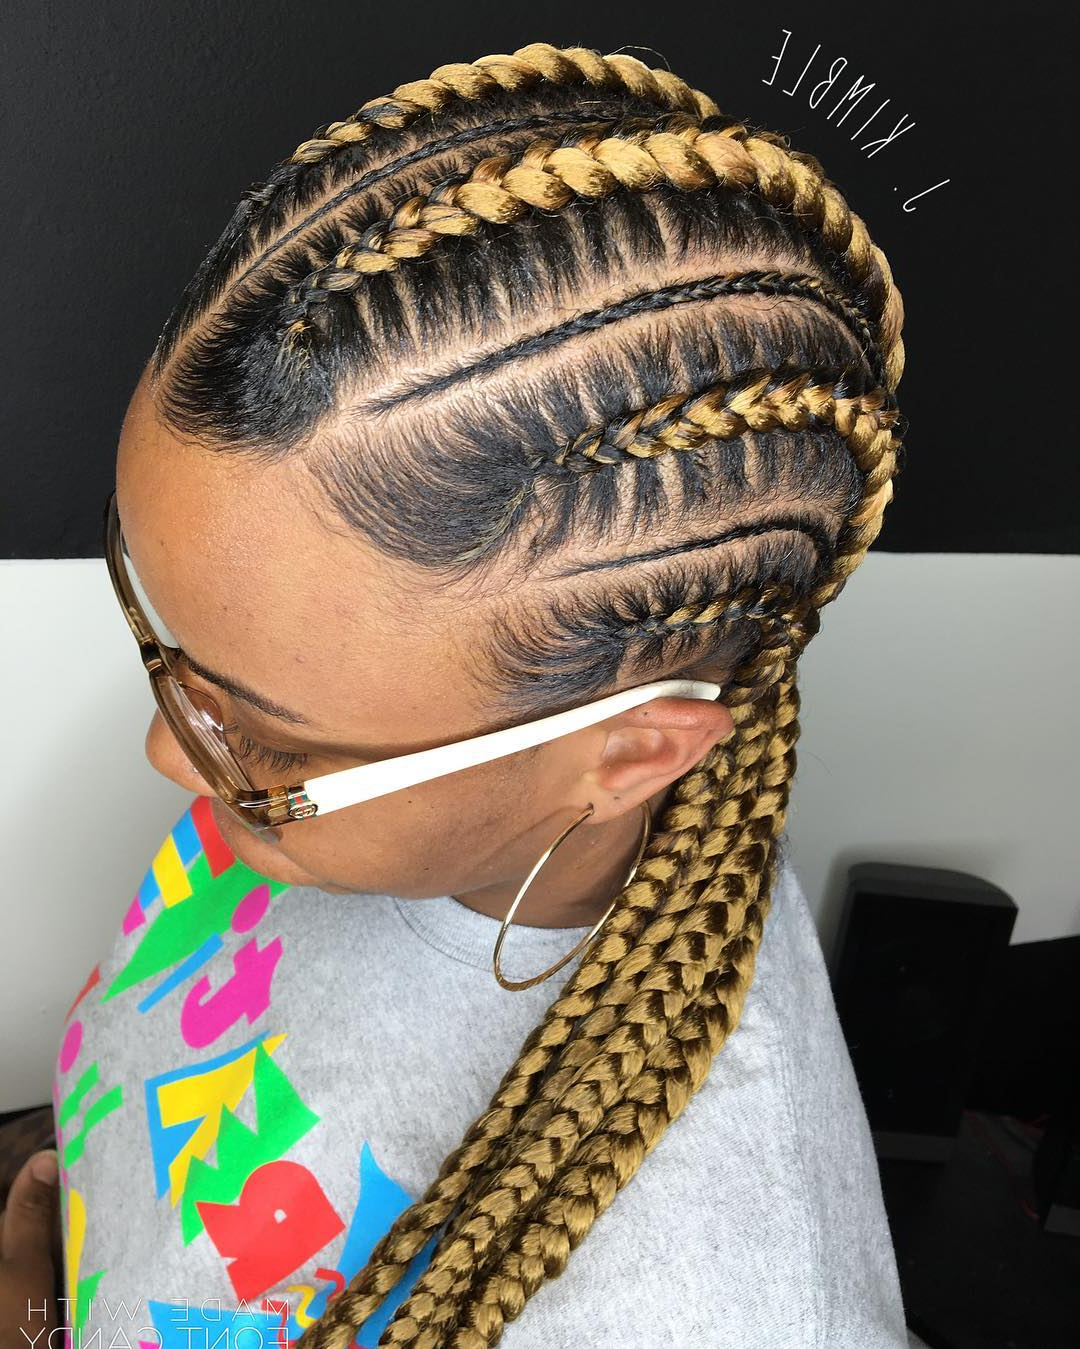 Widely Used Ponytail Braid Hairstyles With Thin And Thick Cornrows With 70 Best Black Braided Hairstyles That Turn Heads In (View 20 of 20)